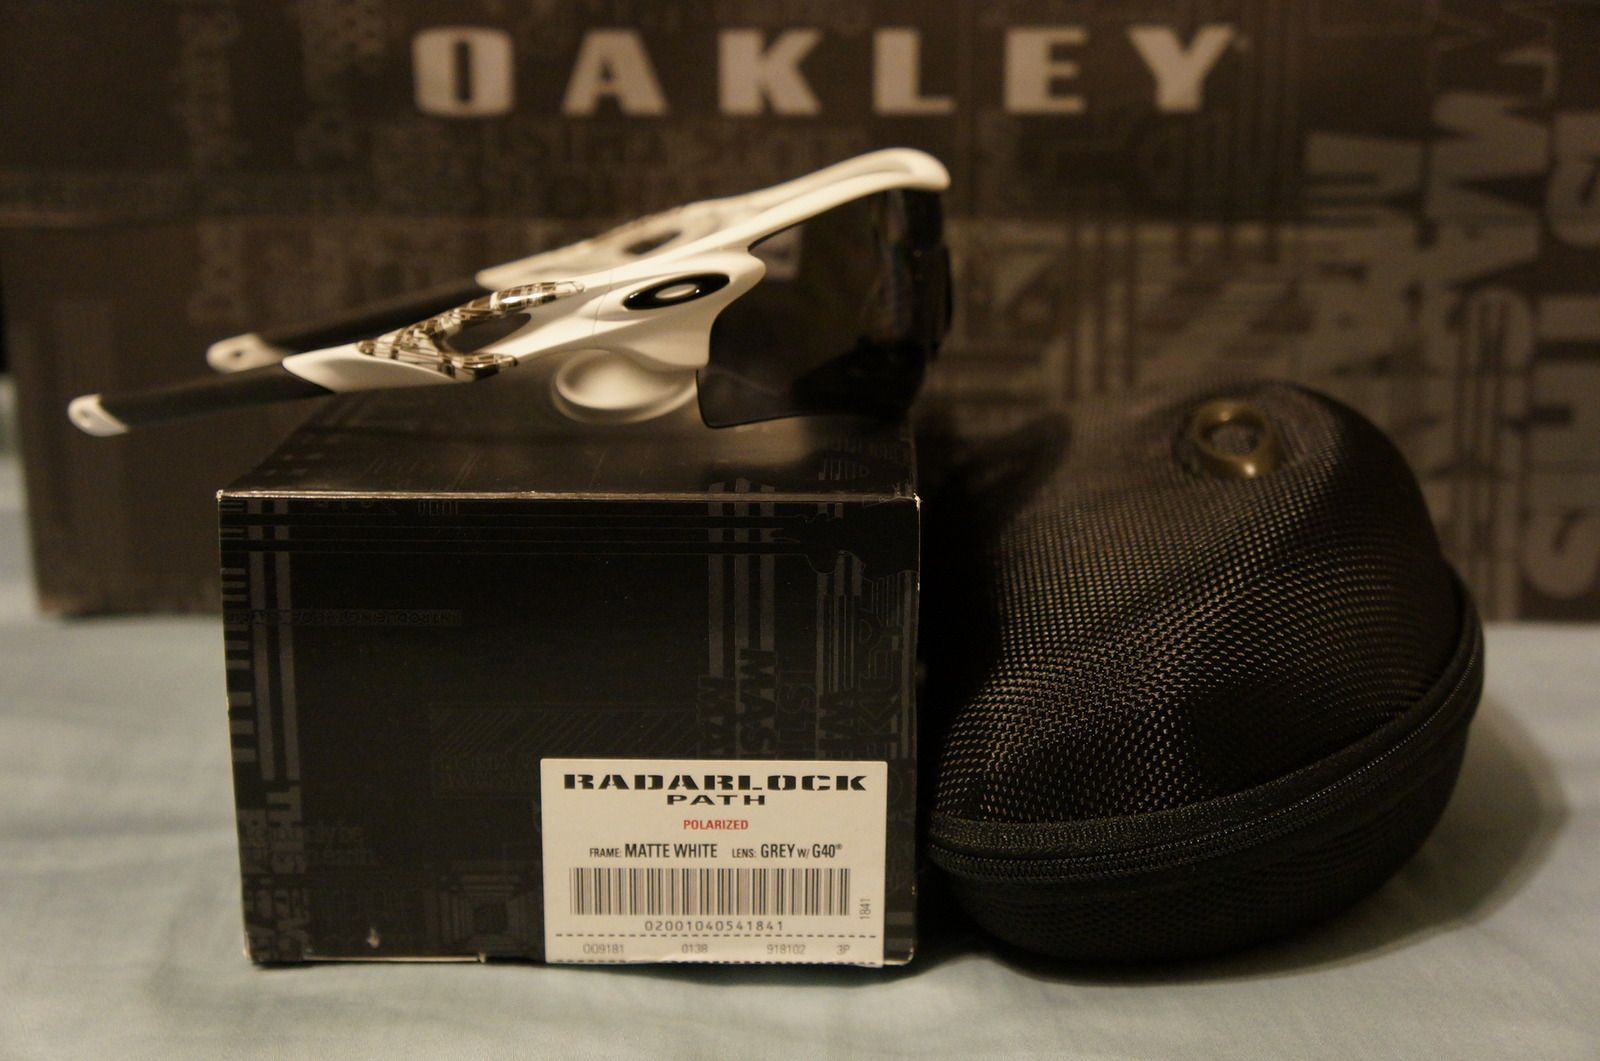 Radarlock - Matte White W/ Grey Polarized & G40 Path BNIB - Price Drop! - dsc07025b.jpg